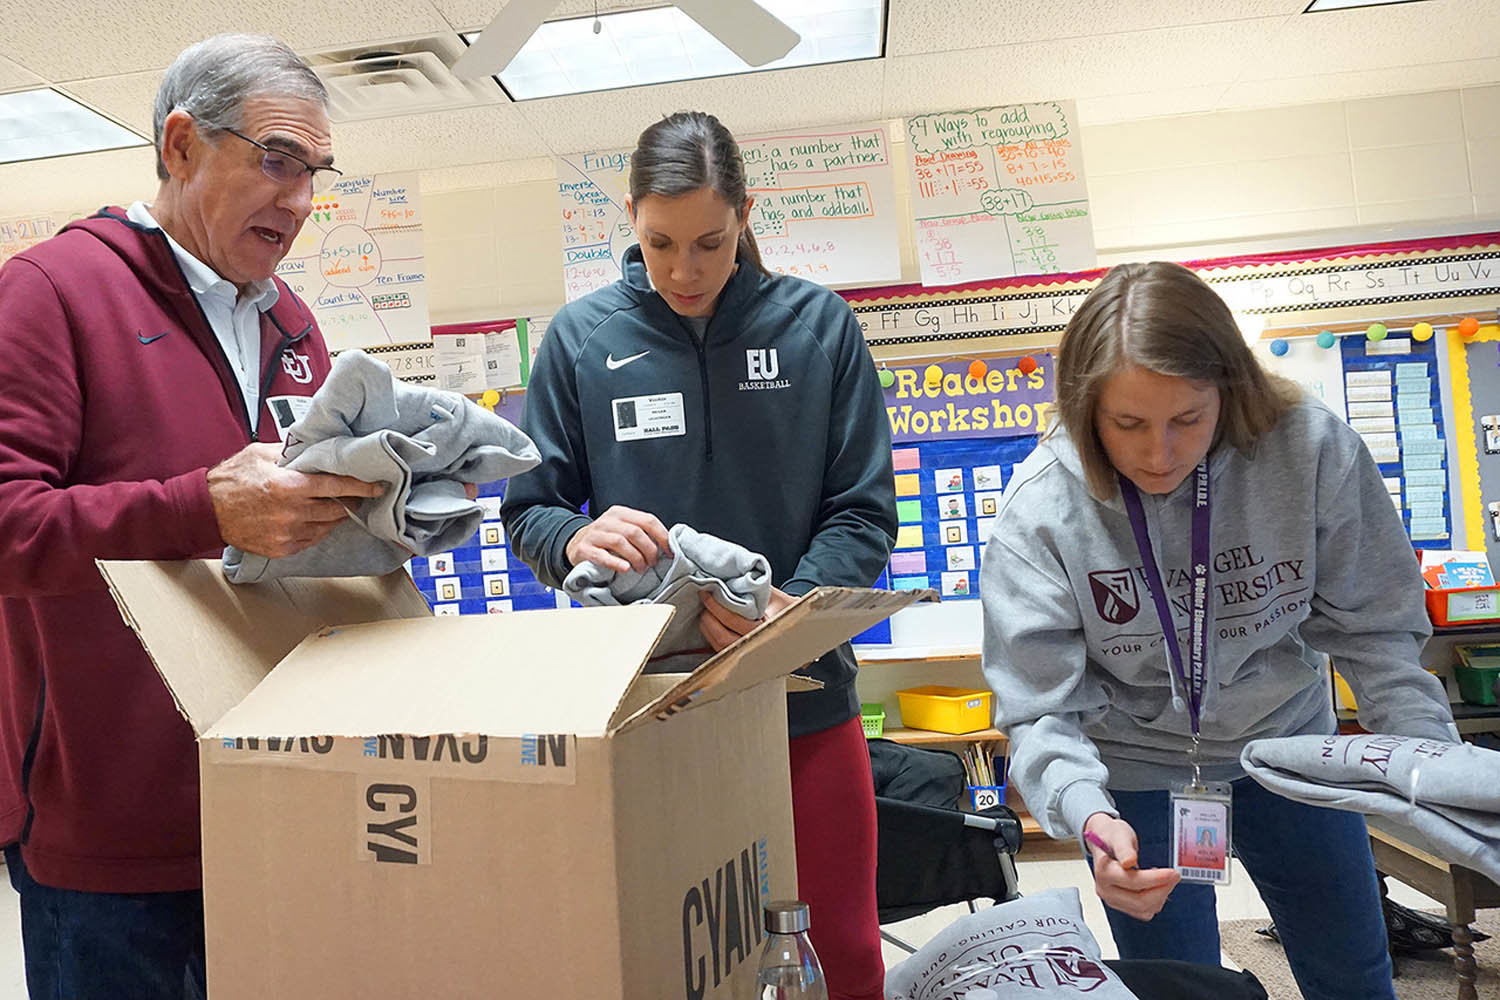 LUNCH MONEYEvangel athletes donated sweatshirt hoodies to all 367 students, teachers and staff at Weller Elementary School. Above, basketball coaches Steve Jenkins and Meghan Leuzinger sort hoodies in Kelsi Thomas' class.